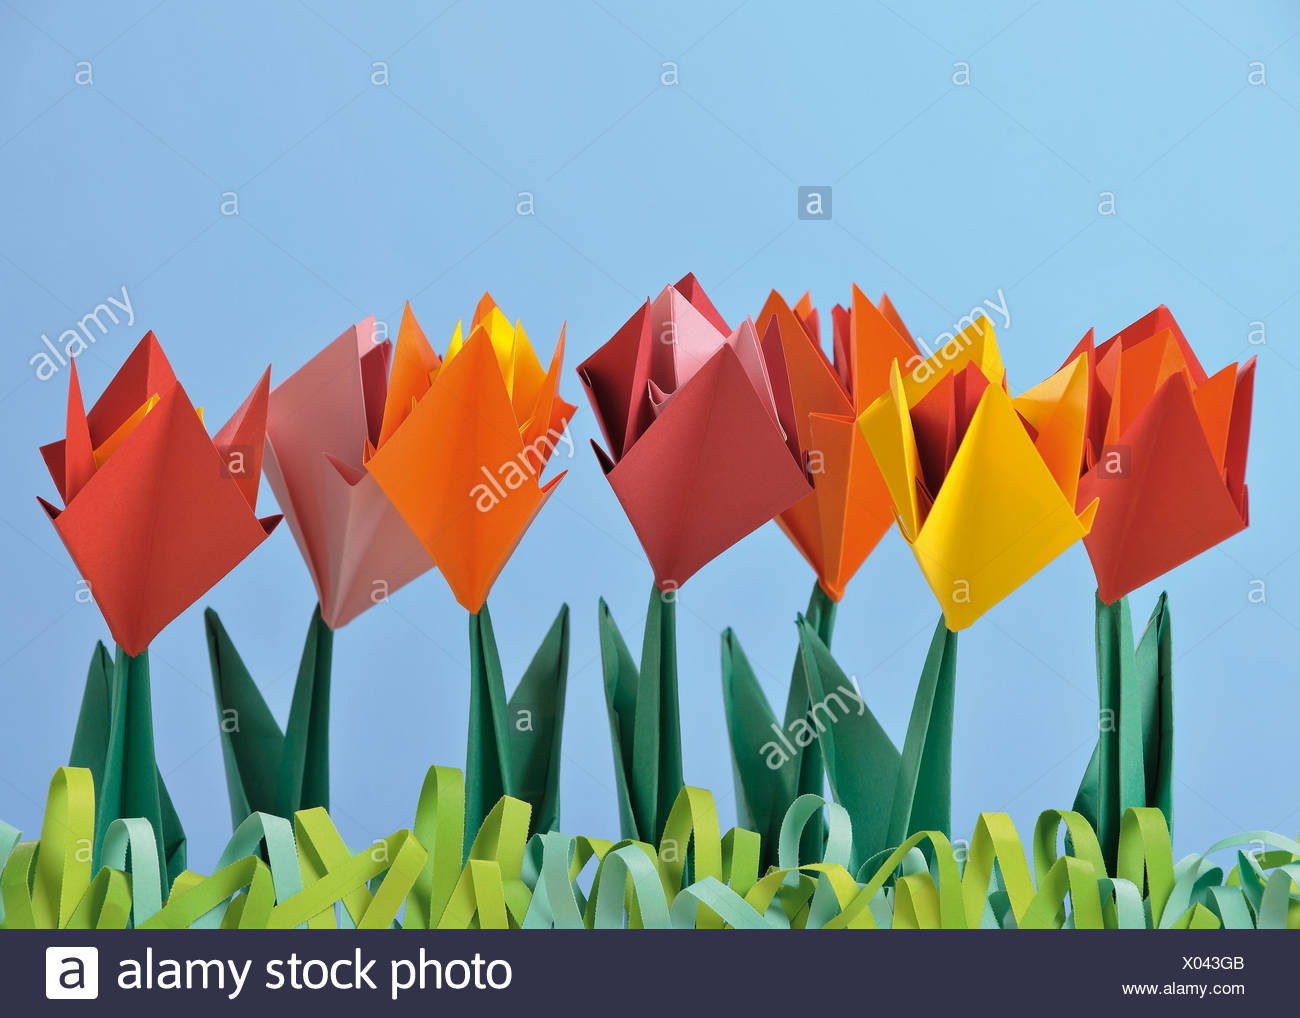 Origami flower tulip stock photos origami flower tulip stock origami tulips against blue background stock image jeuxipadfo Image collections